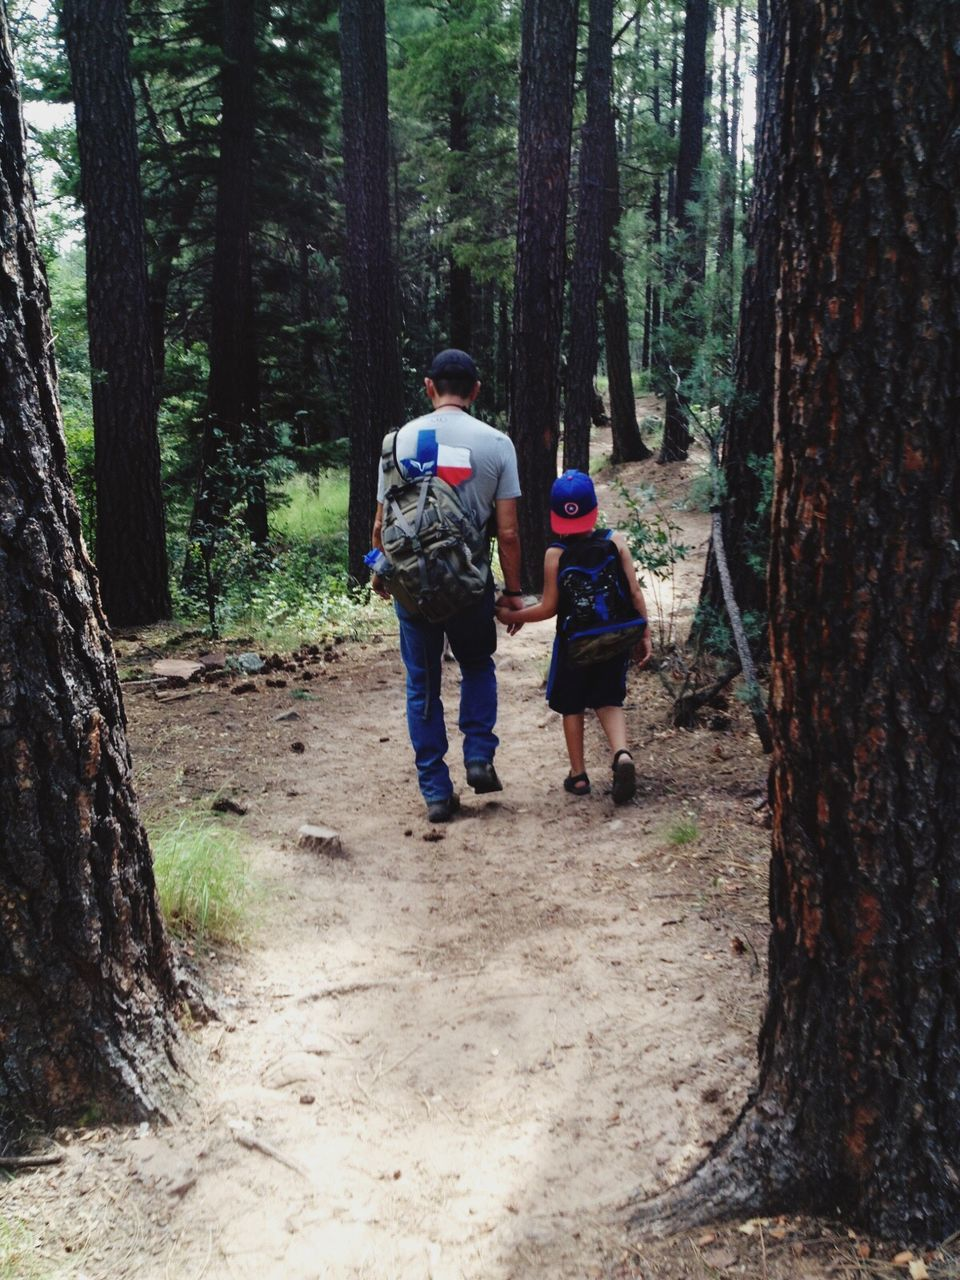 forest, tree, rear view, tree trunk, hiking, backpack, walking, adventure, footpath, leisure activity, nature, full length, woodland, real people, day, togetherness, exploration, senior adult, men, two people, outdoors, lifestyles, women, friendship, beauty in nature, people, adult, adults only